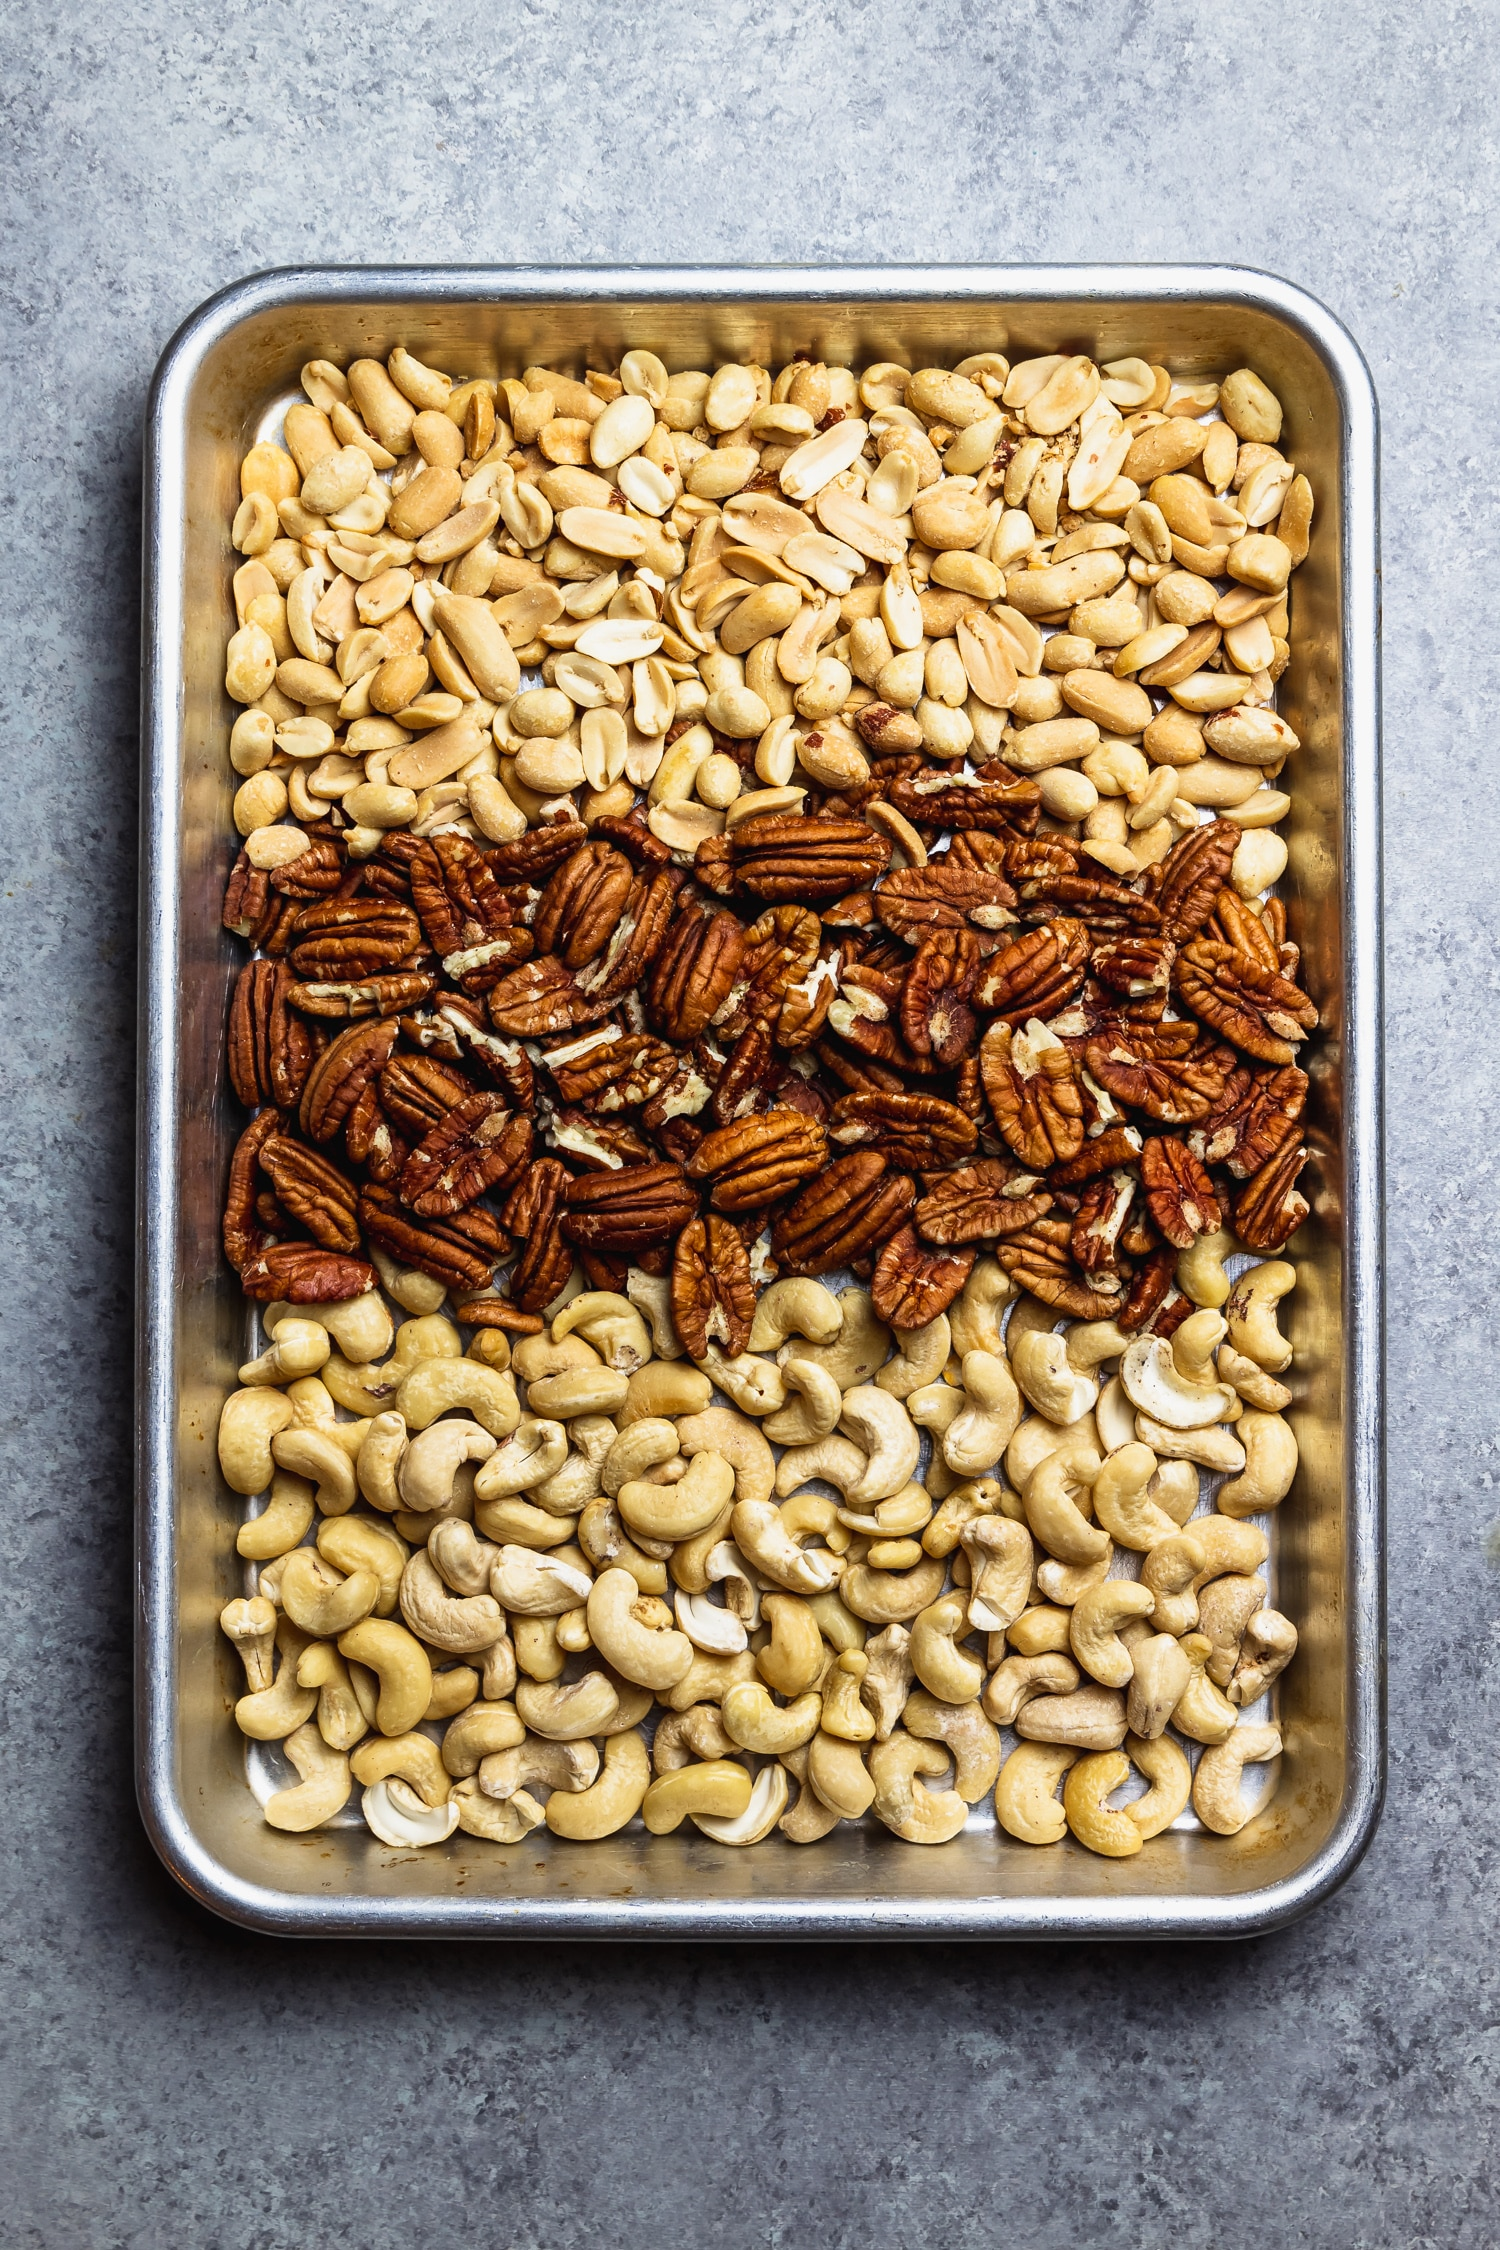 pecans, peanuts, and cashews on a rimmed baking sheet